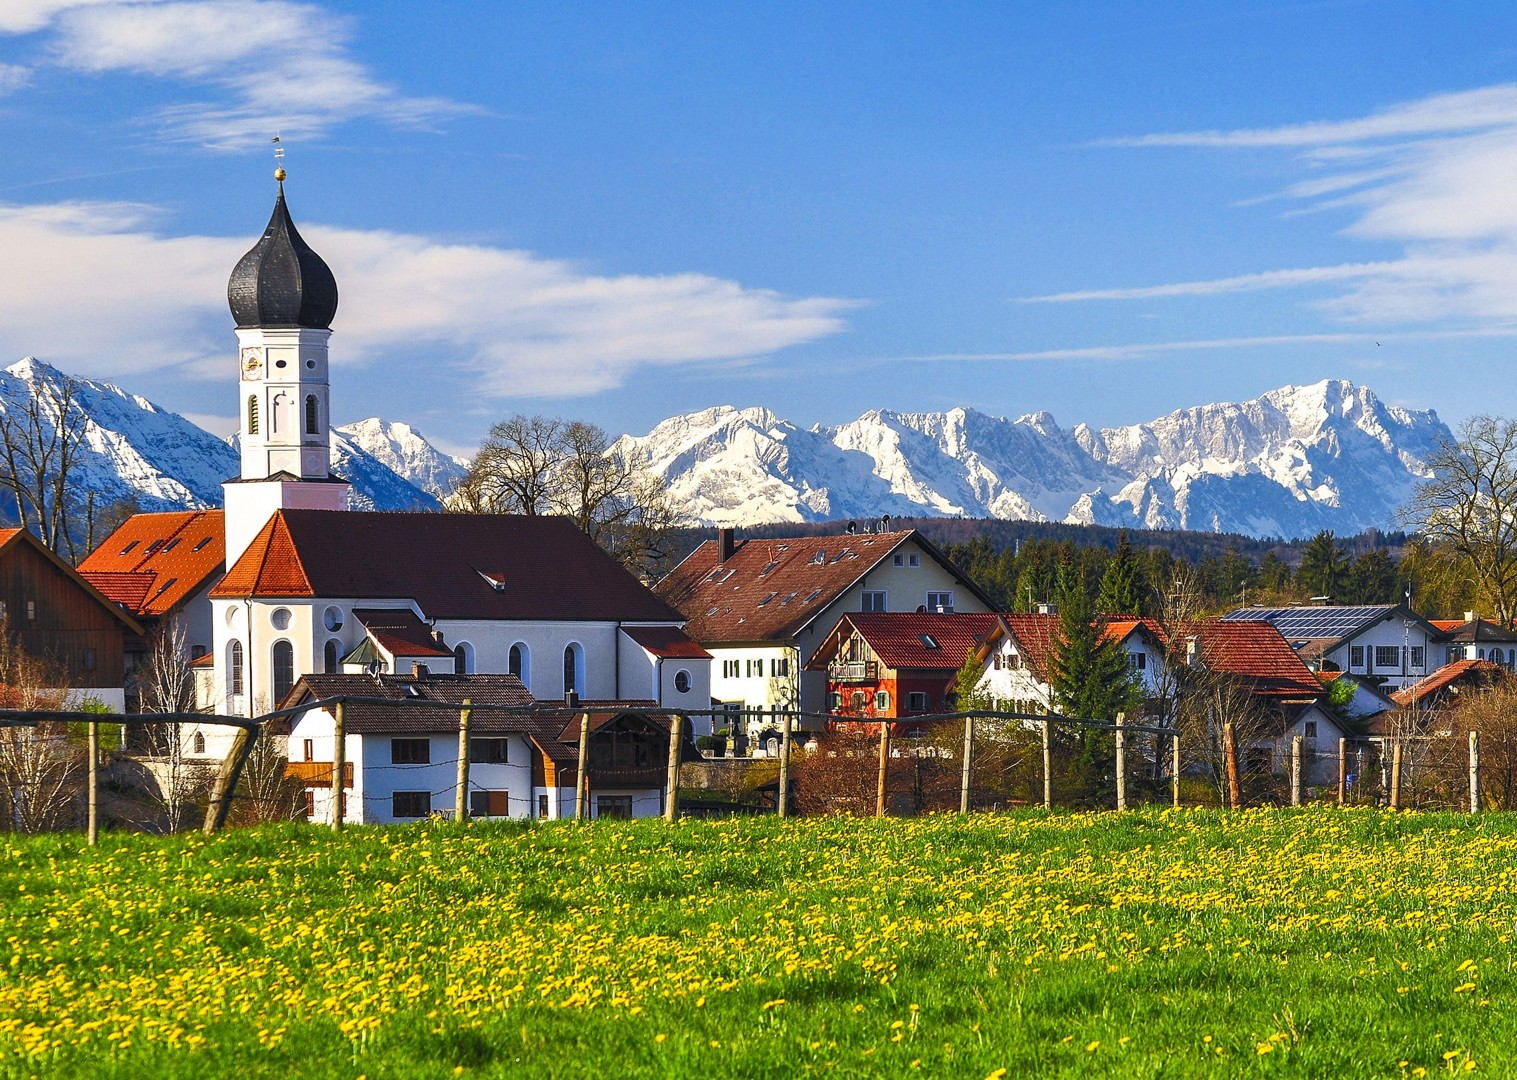 scenery-germany-village-alps-garmisch-partenkirchen-cycling-tour.jpg - Germany - Bavarian Lakes - Self-Guided Leisure Cycling Holiday - Leisure Cycling